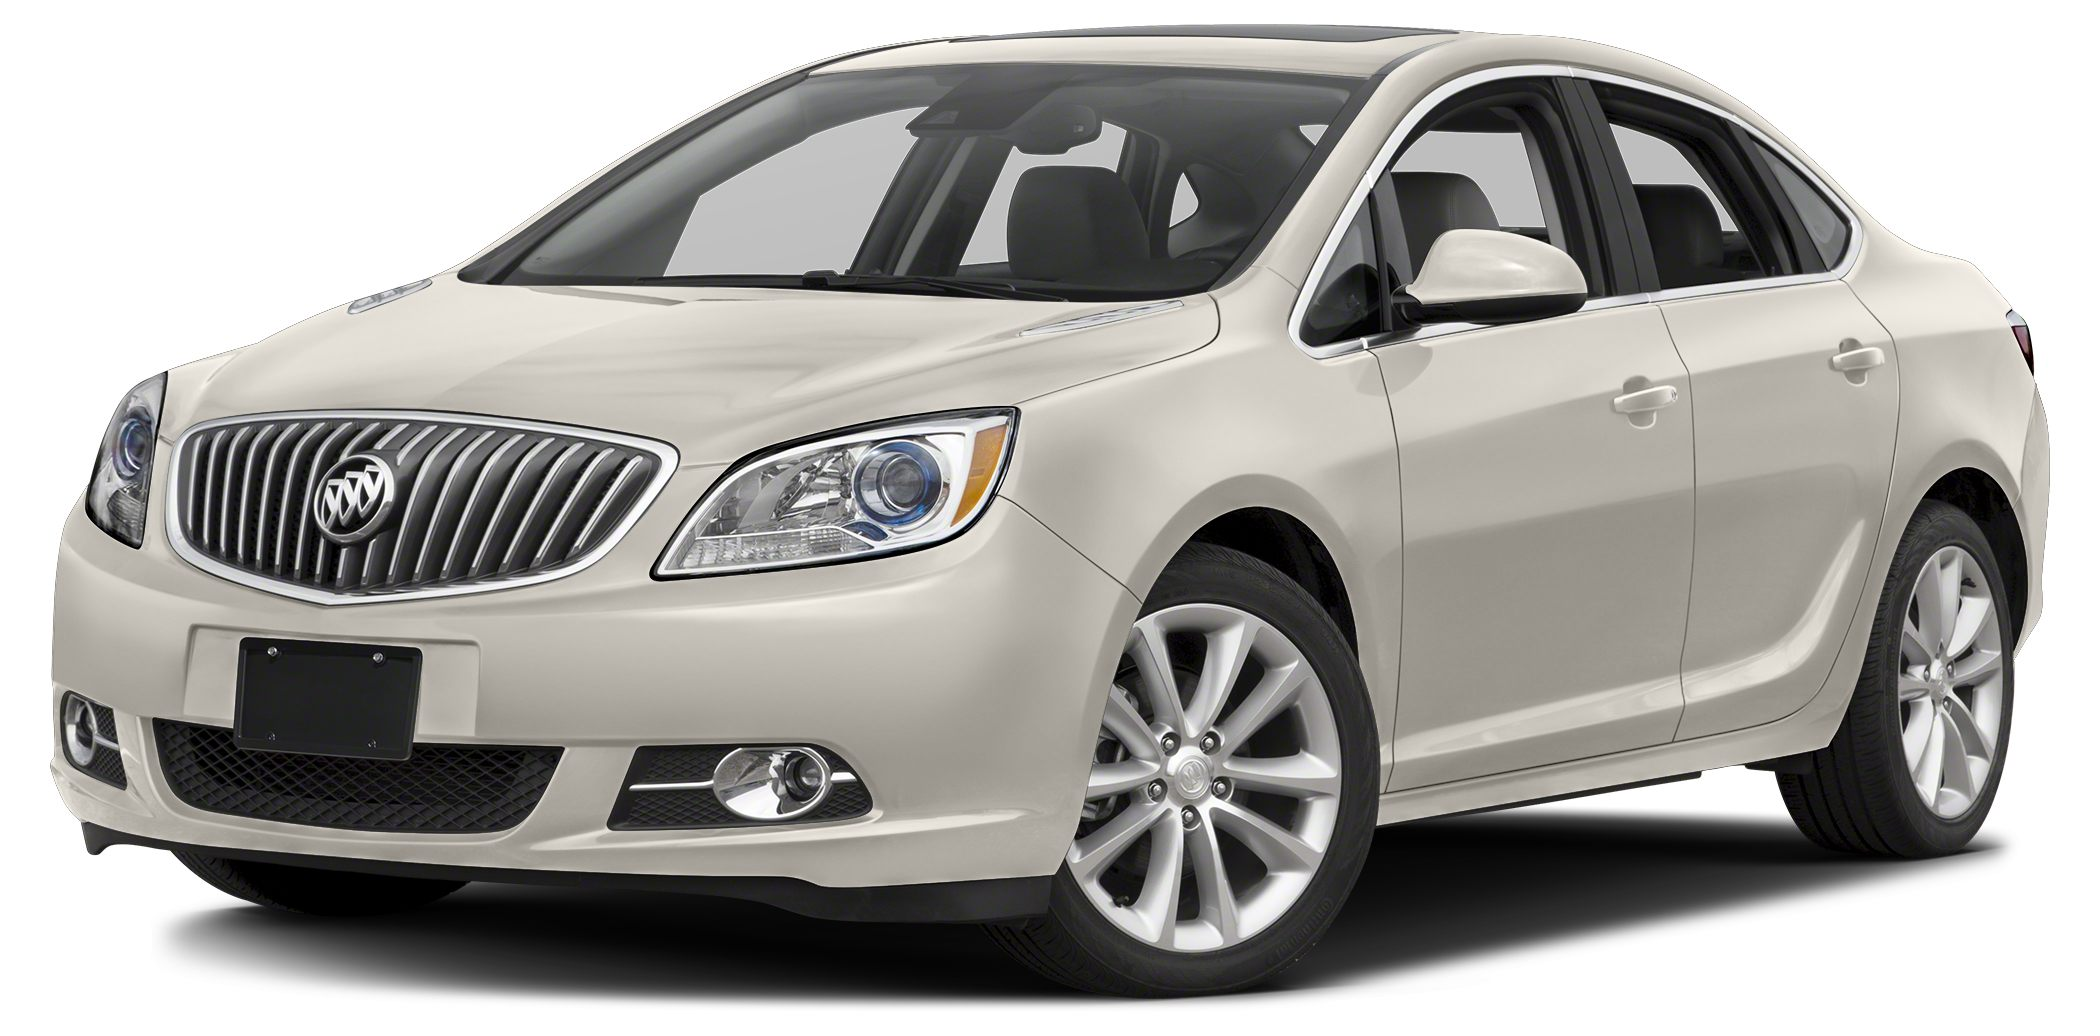 2015 Buick Verano Base CARFAX 1-Owner Excellent Condition ONLY 6873 Miles Verano trim EPA 32